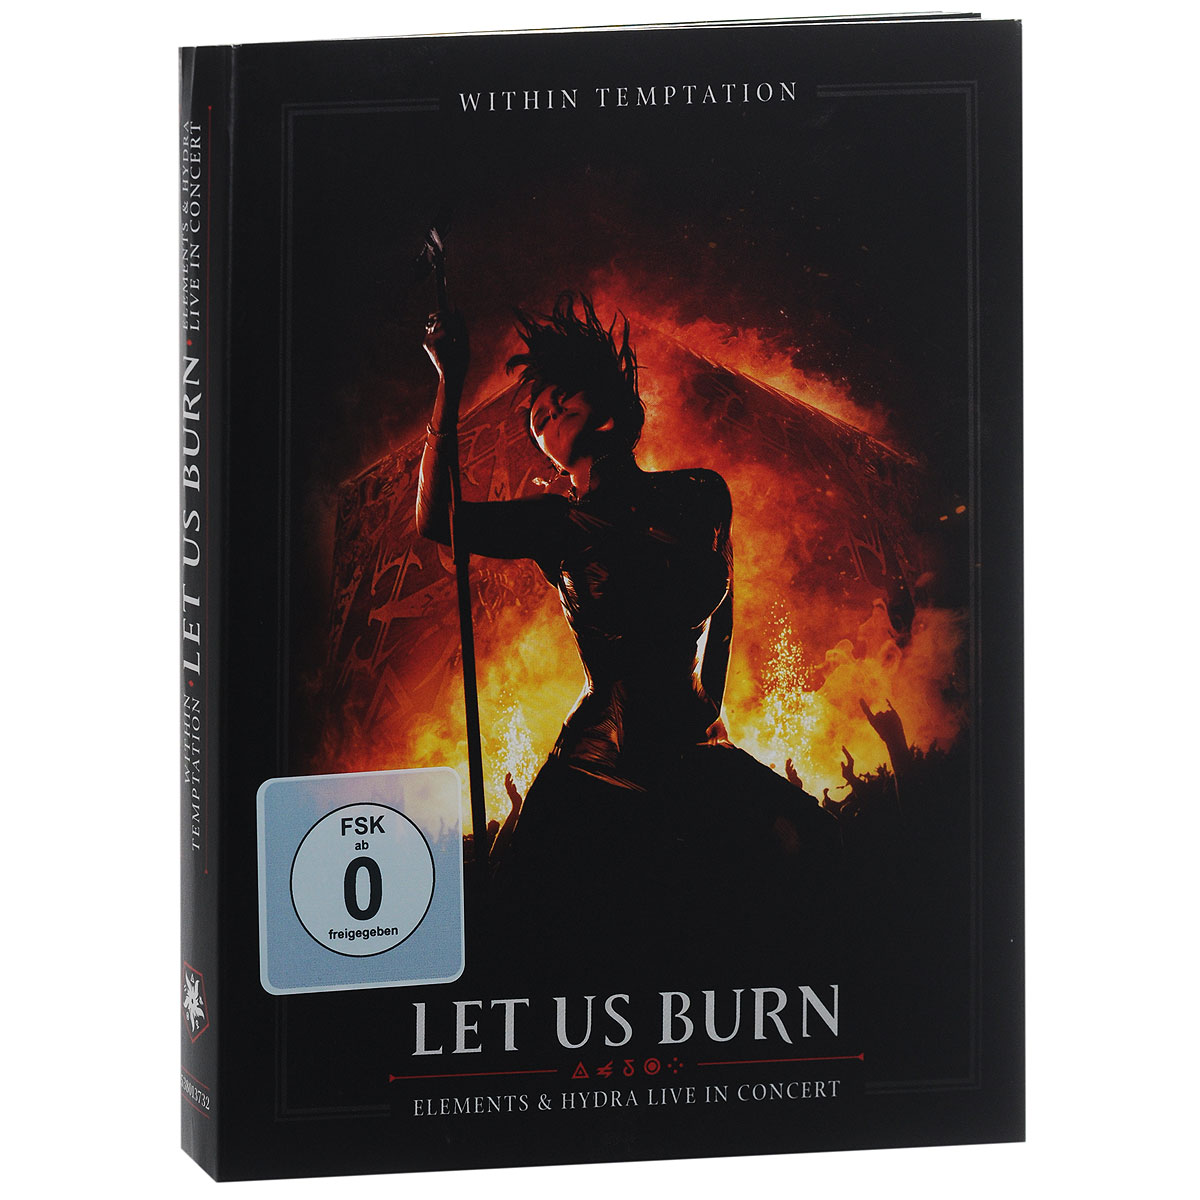 Within Temptation Within Temptation. Let Us Burn (Elements & Hydra Live In Concert) (2 CD + DVD) procol harum procol harum live in concert with the edmonton symphony 2 lp colour